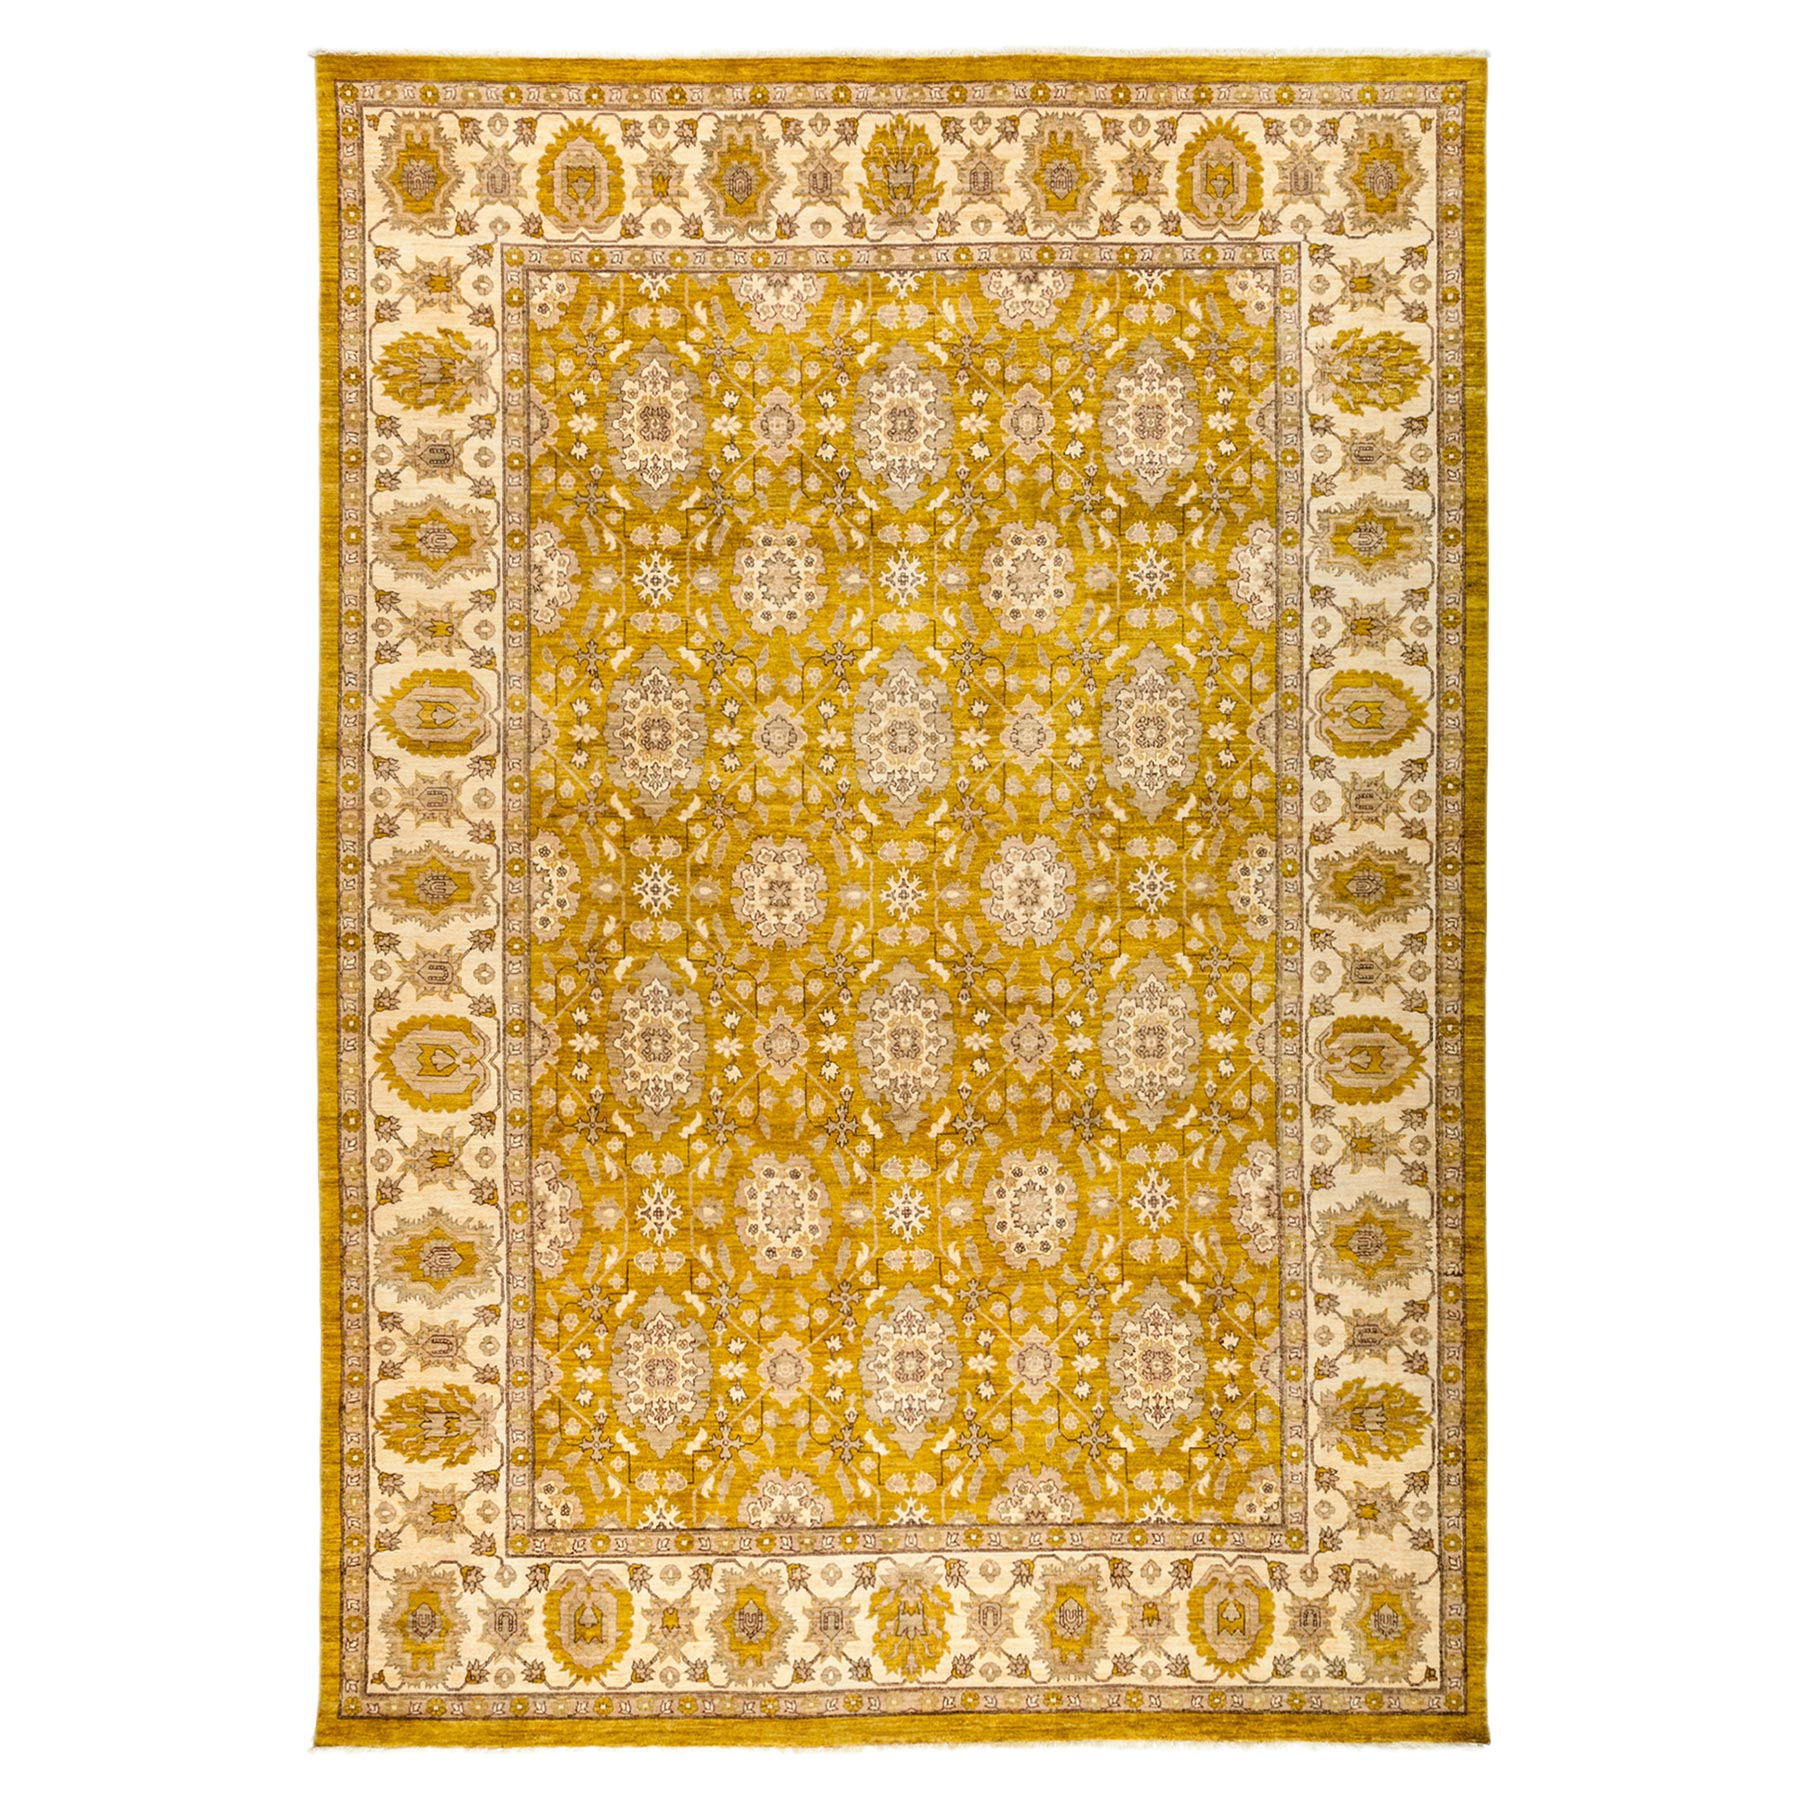 Justina French Beige Goldenrod Wool Rug - 10'3 x 14'9